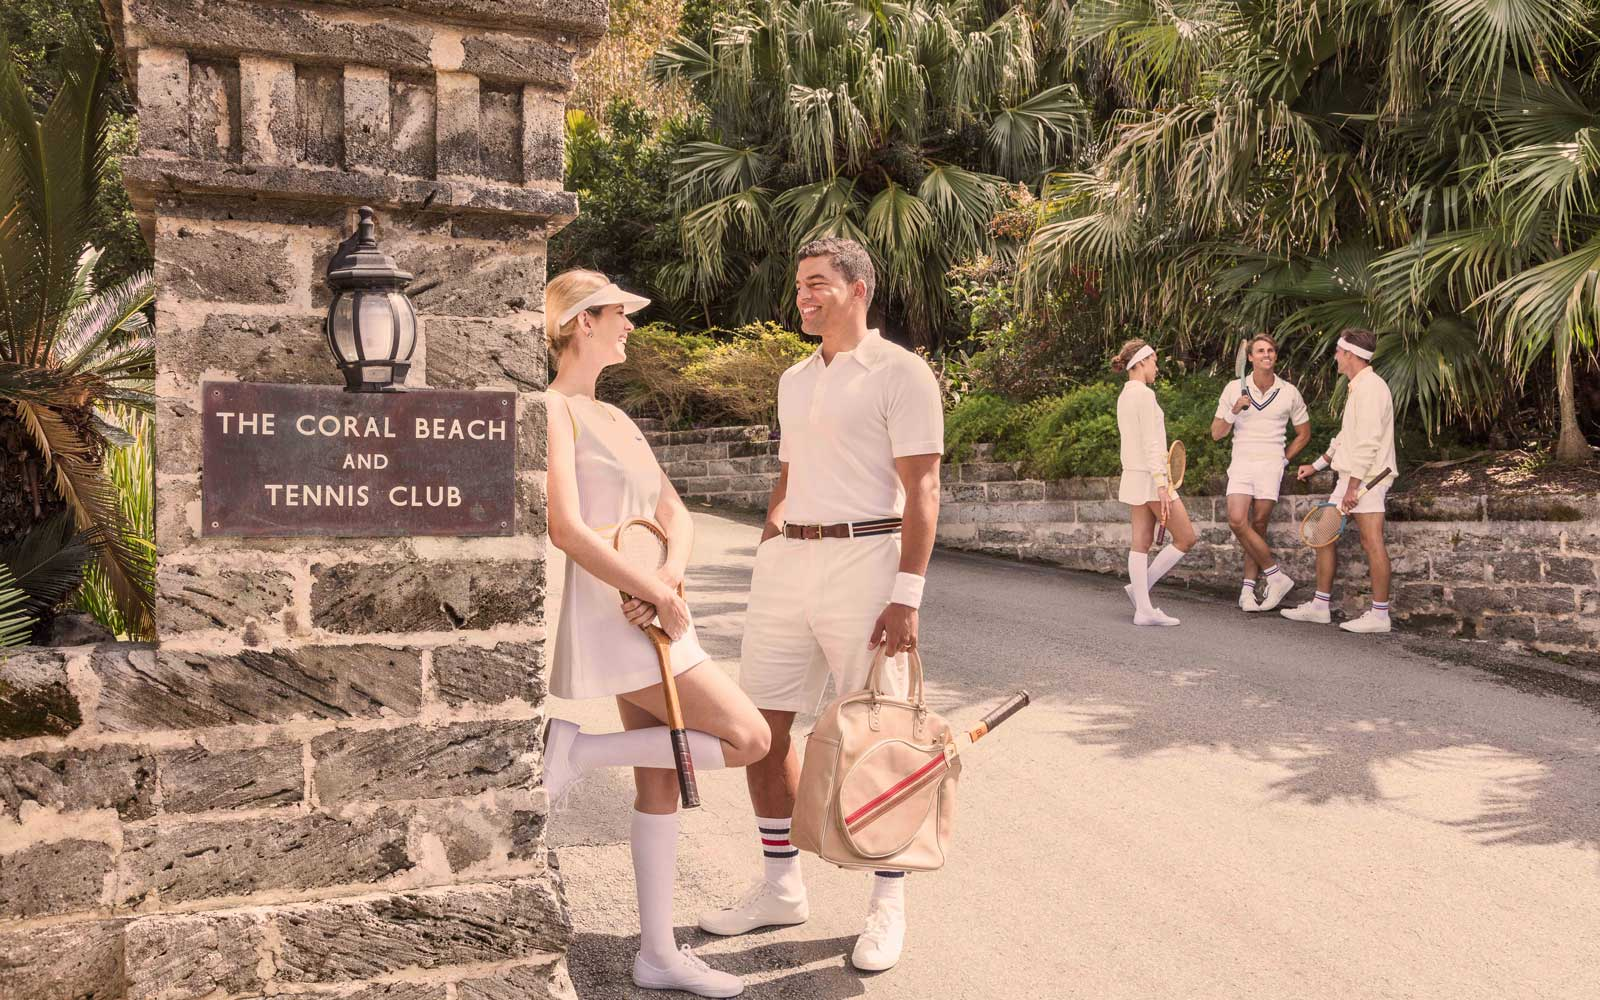 Bermuda is home to a variety of historic private members' clubs.